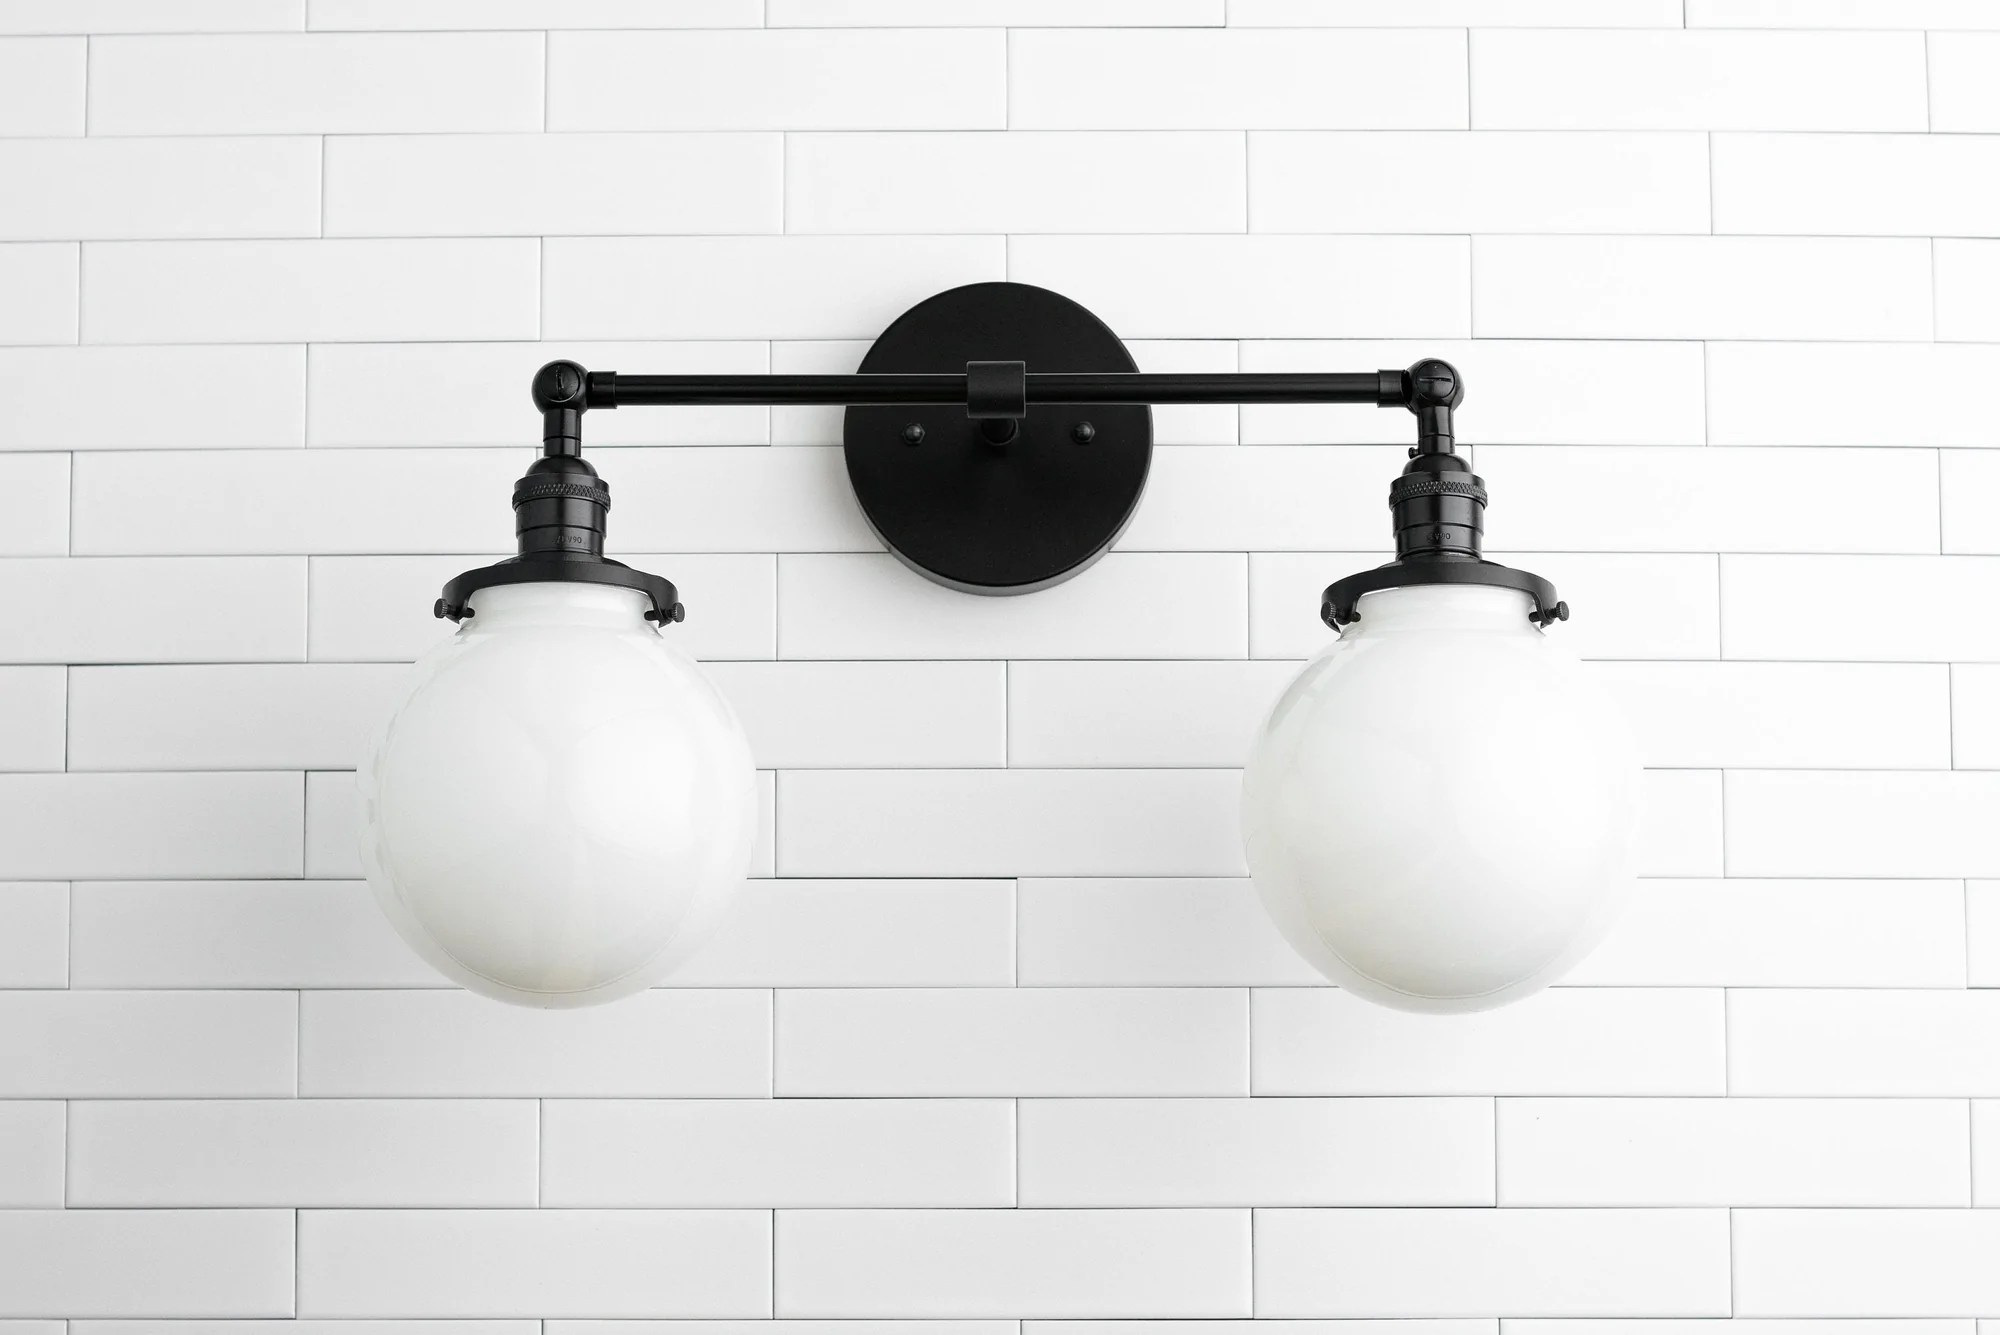 Bathroom Light Fixtures Globe Light Fixture Wall Light Vanity Light Globe Vanity Light Wall Mount Light Bathroom Lighting Hardwire Vanity